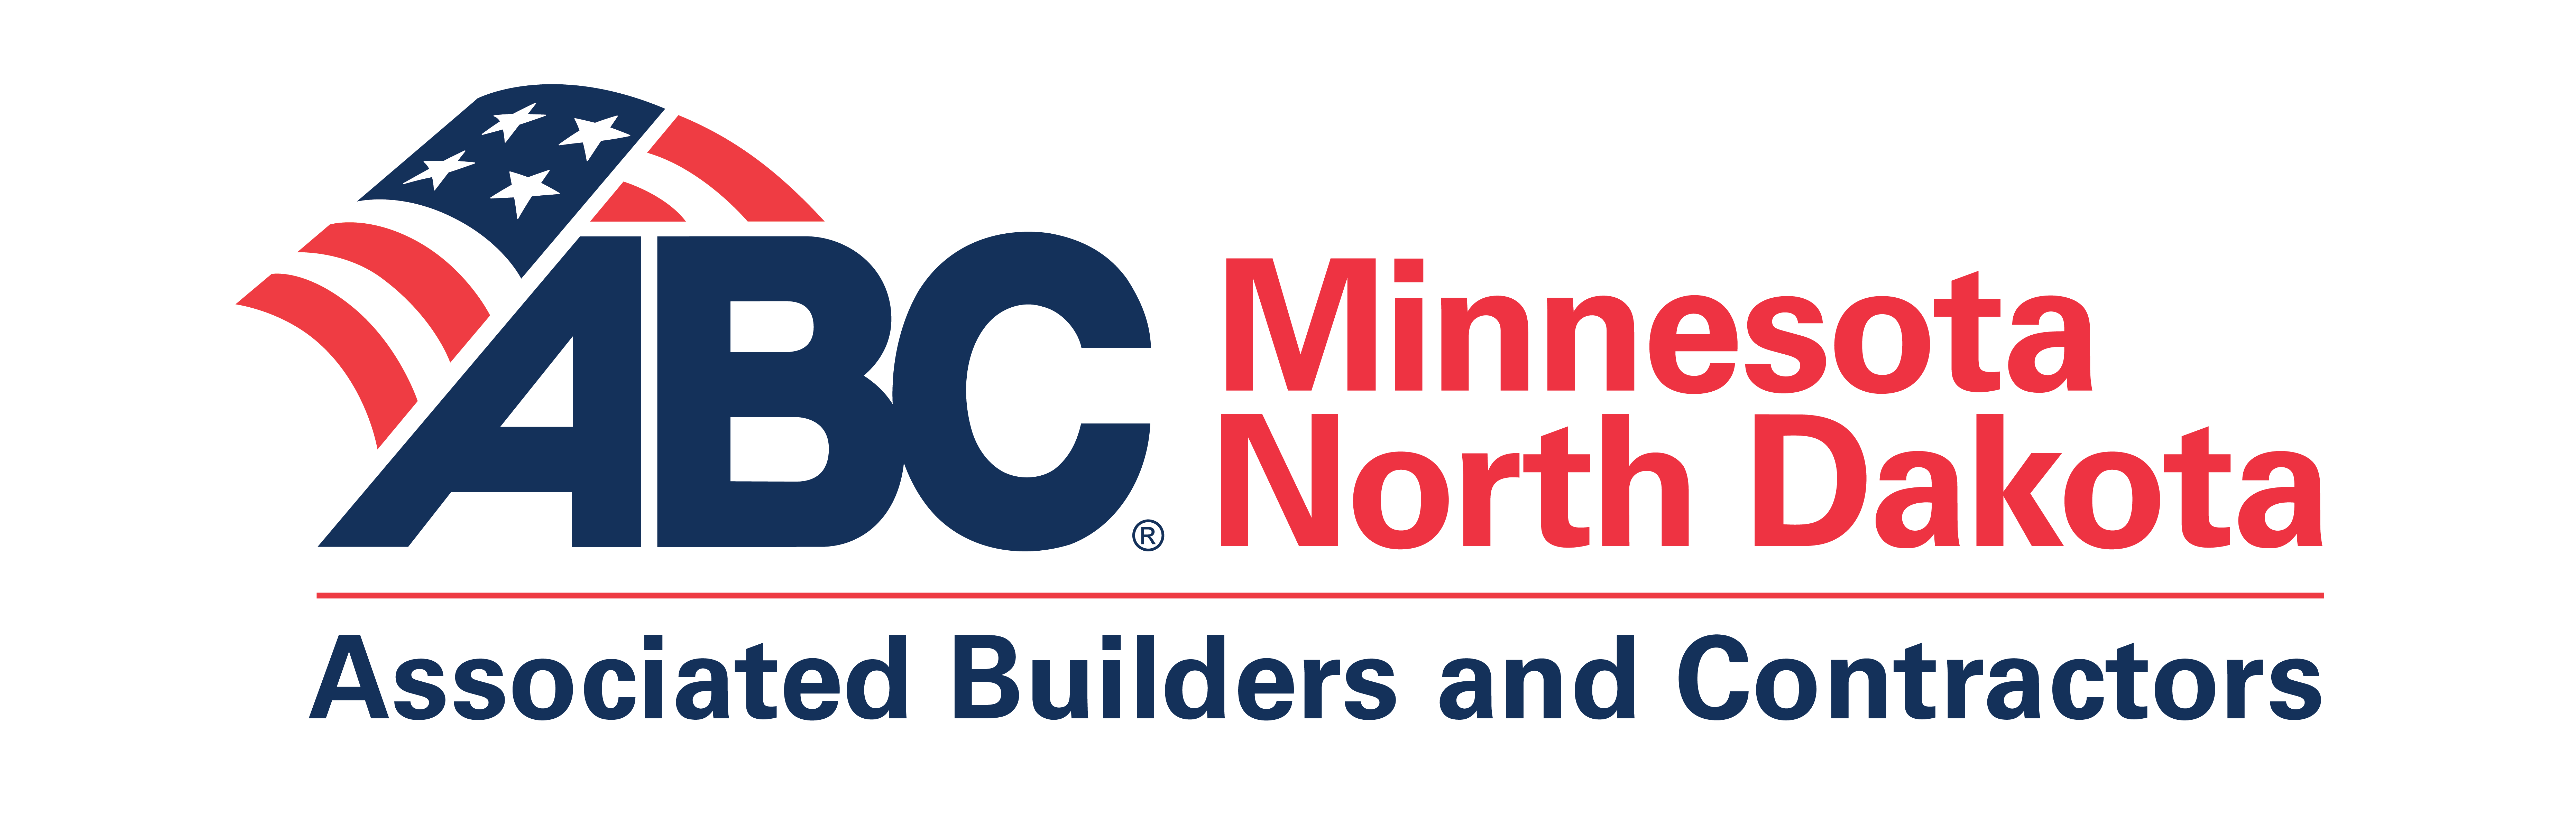 Associated Builders and Contractors - Minnesota North Dakota Chapter